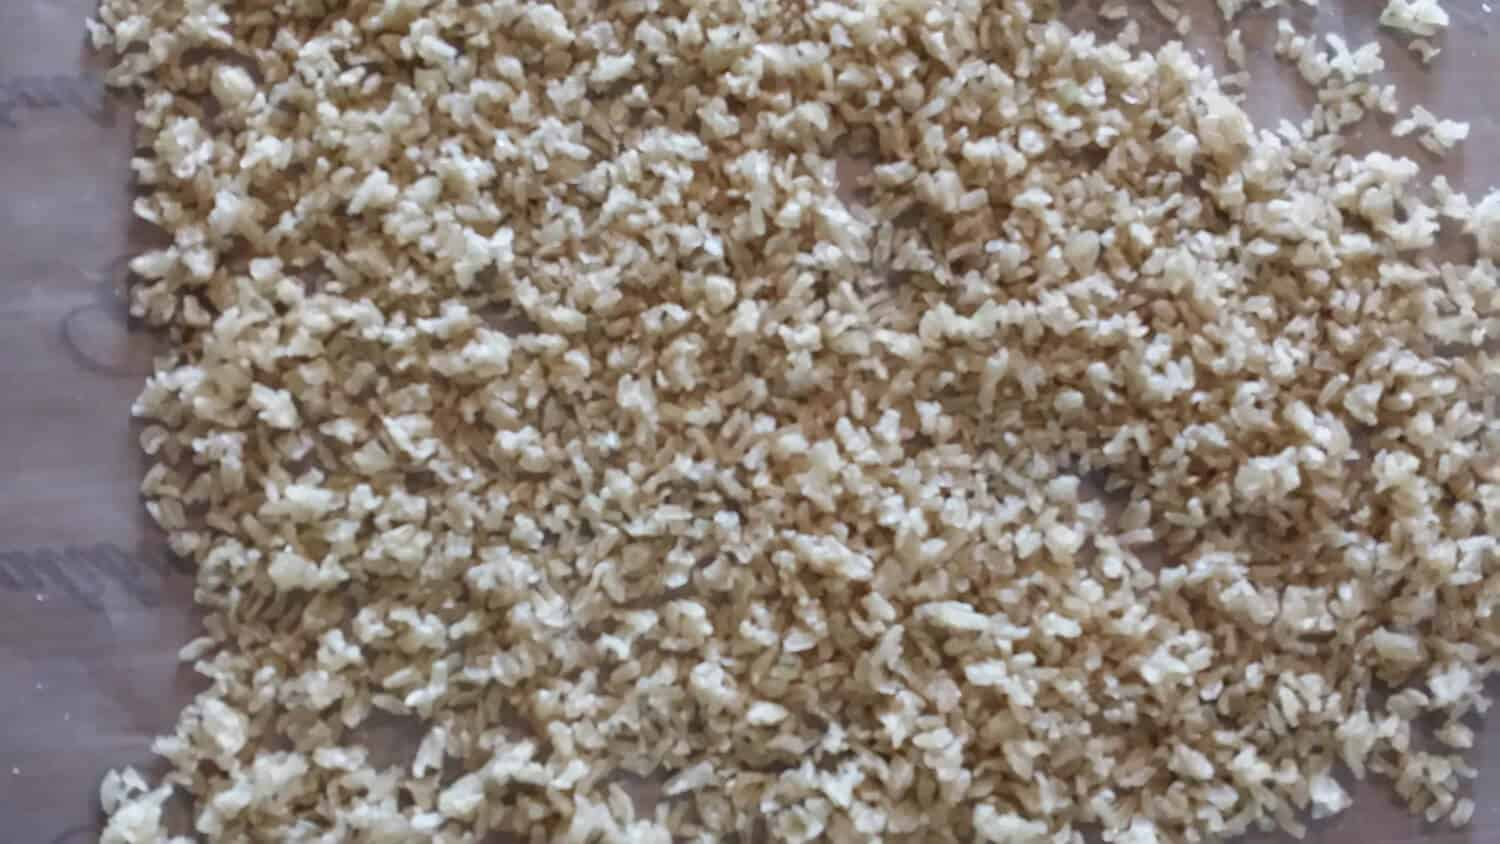 partially dehydrated unclumped rice on dehydrator tray